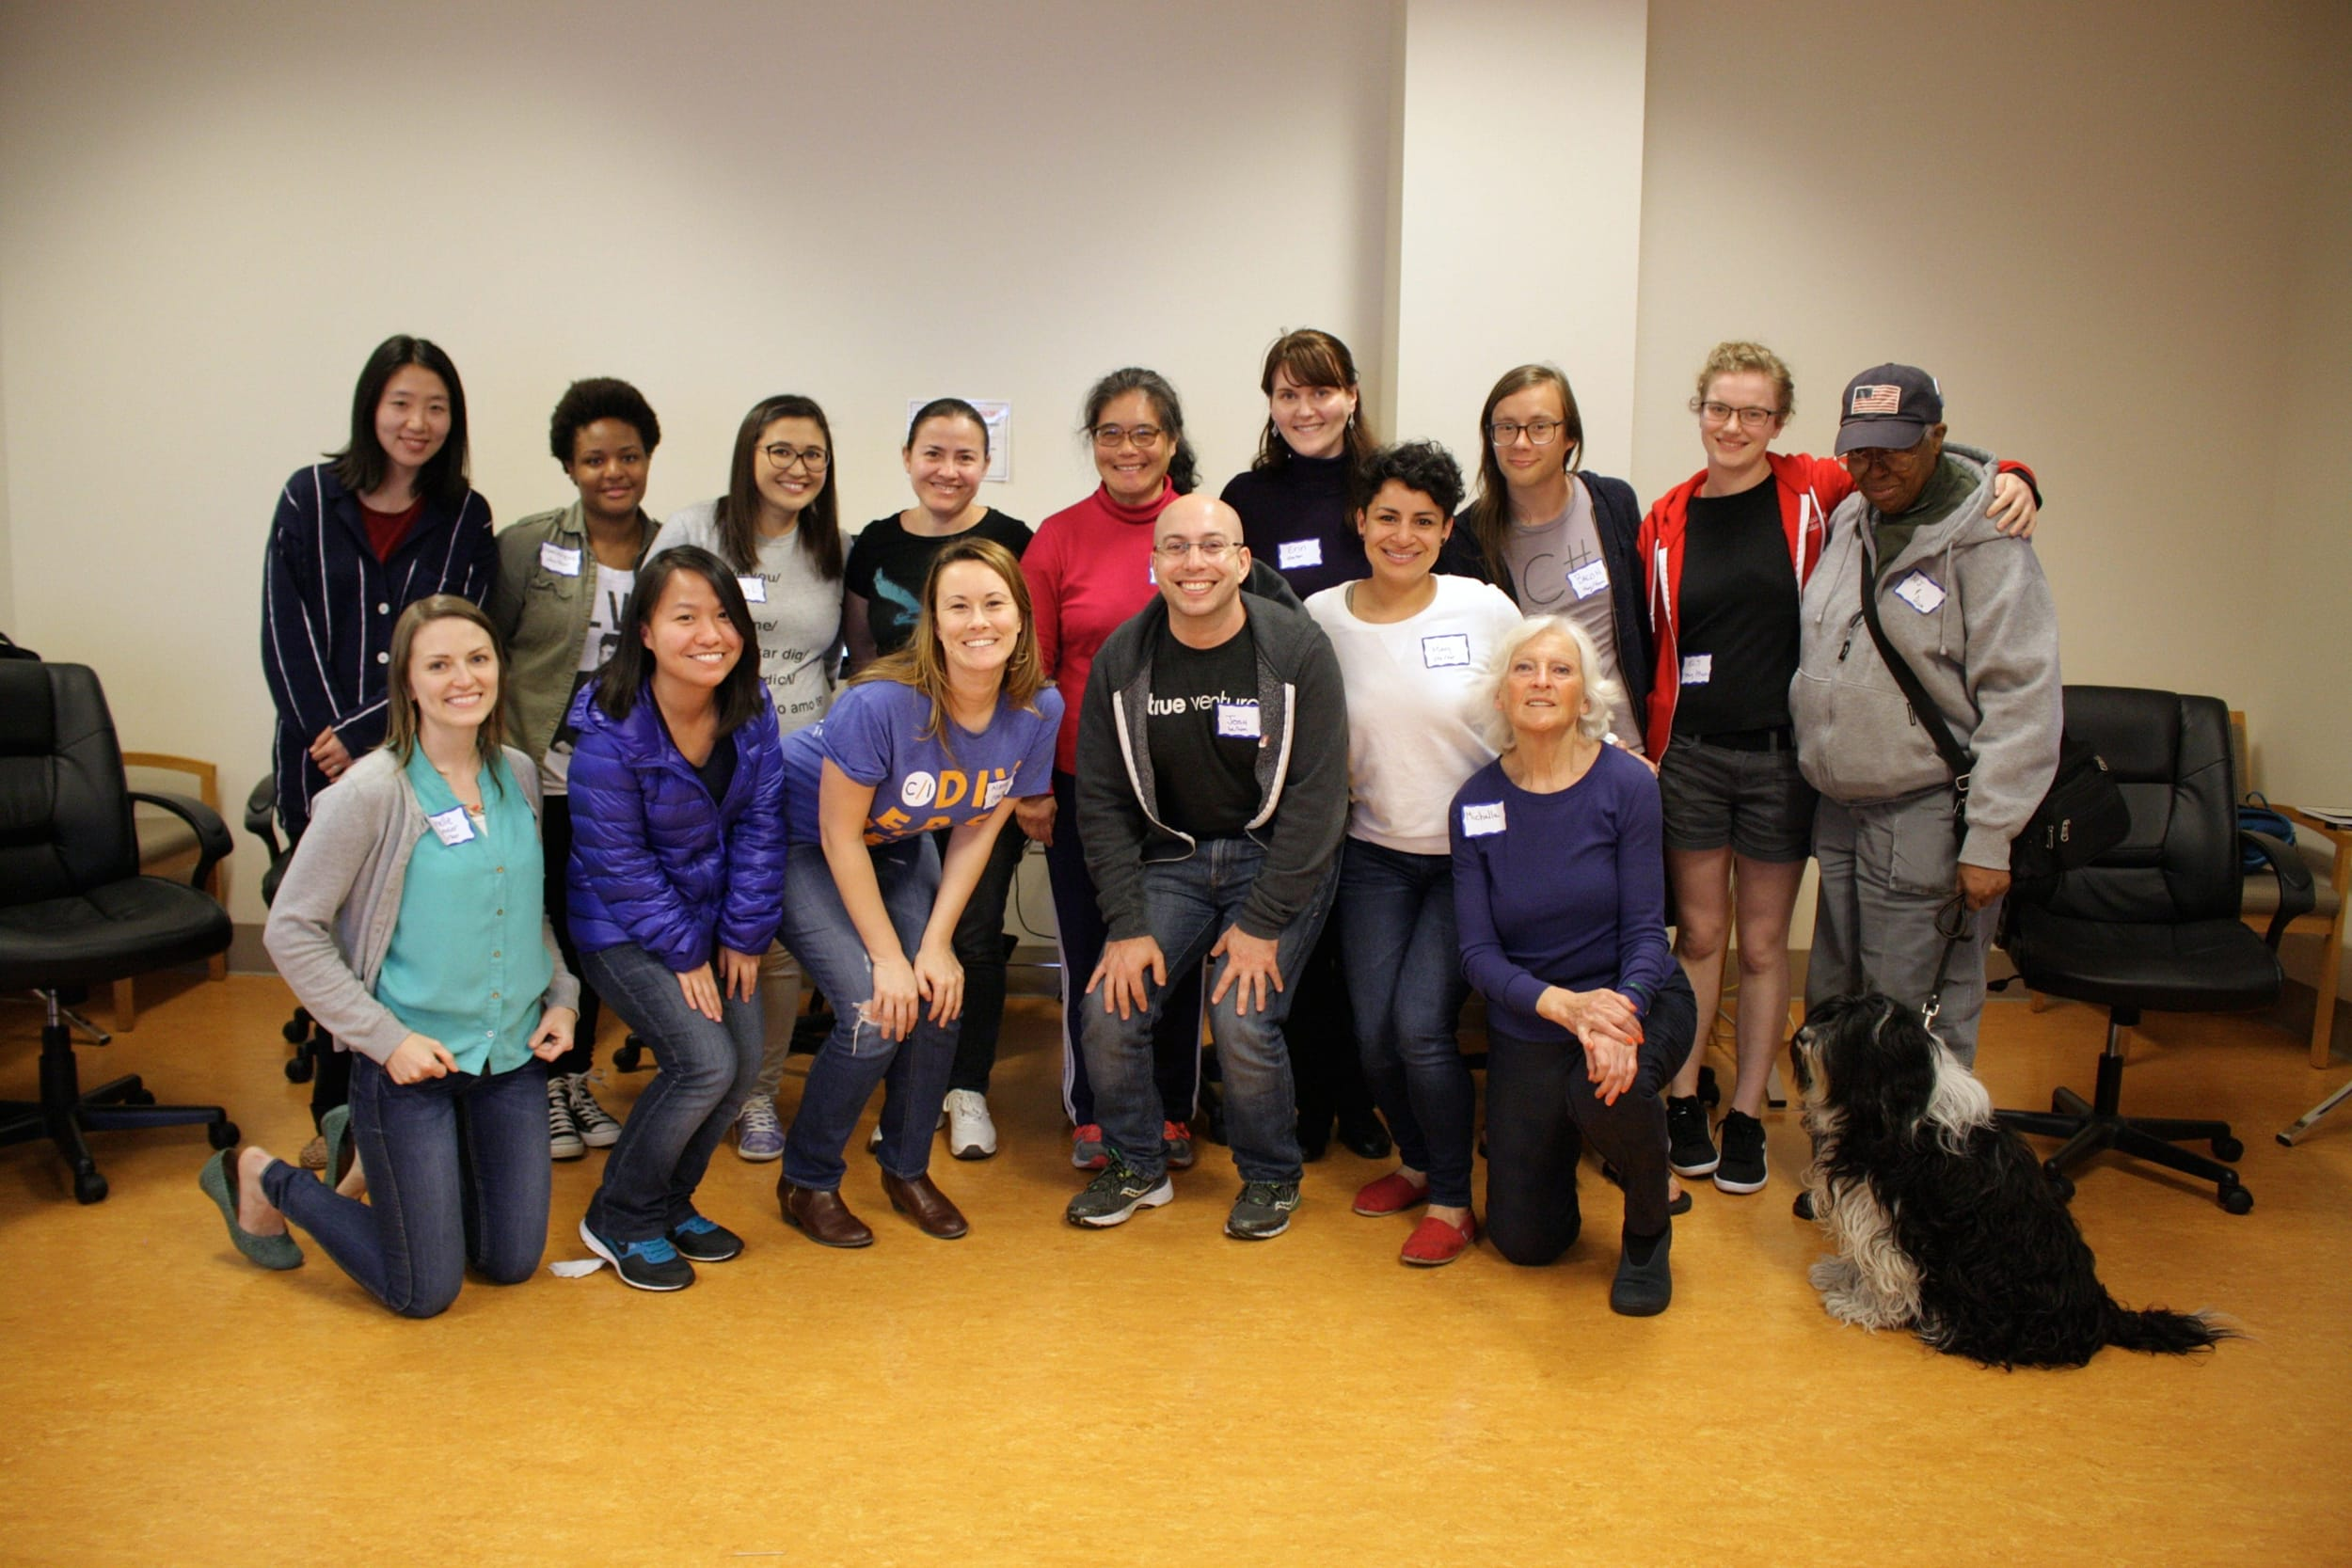 Fifteen participants, mostly women, gathered after a workshop.